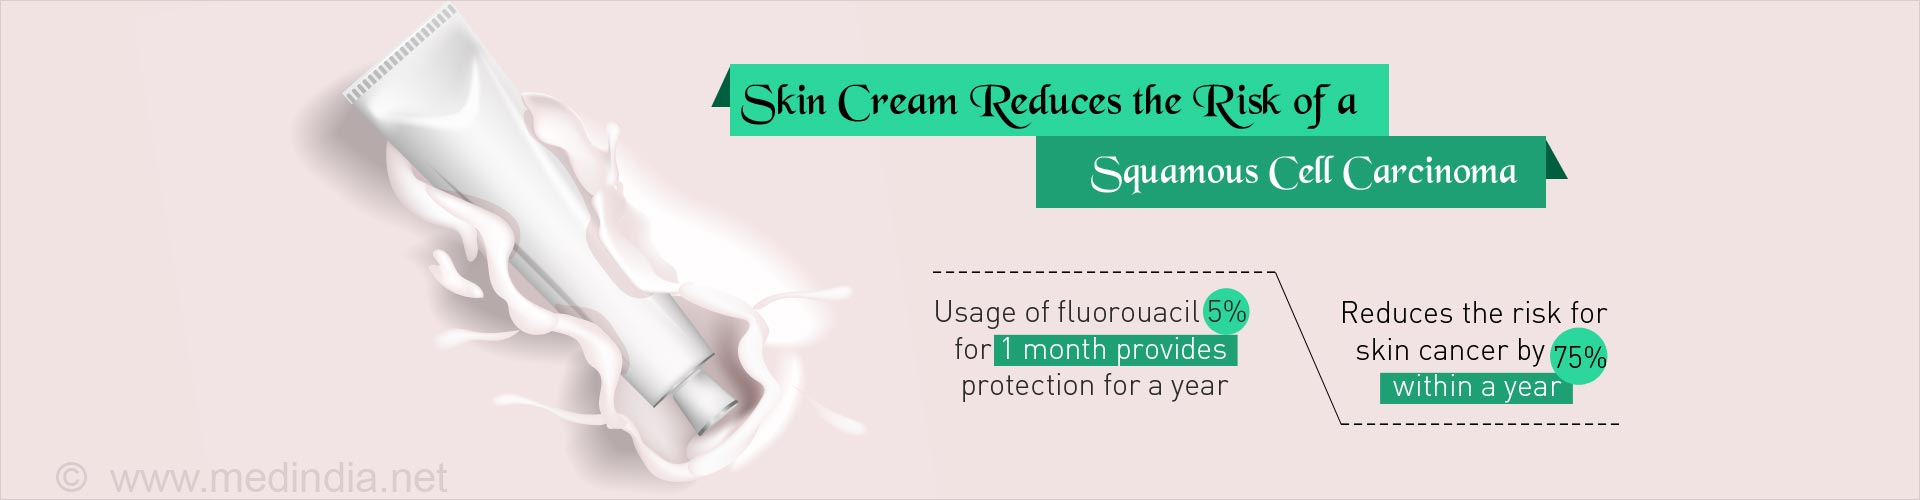 Skin cream reduces risk of skin cancer by 75% within one year